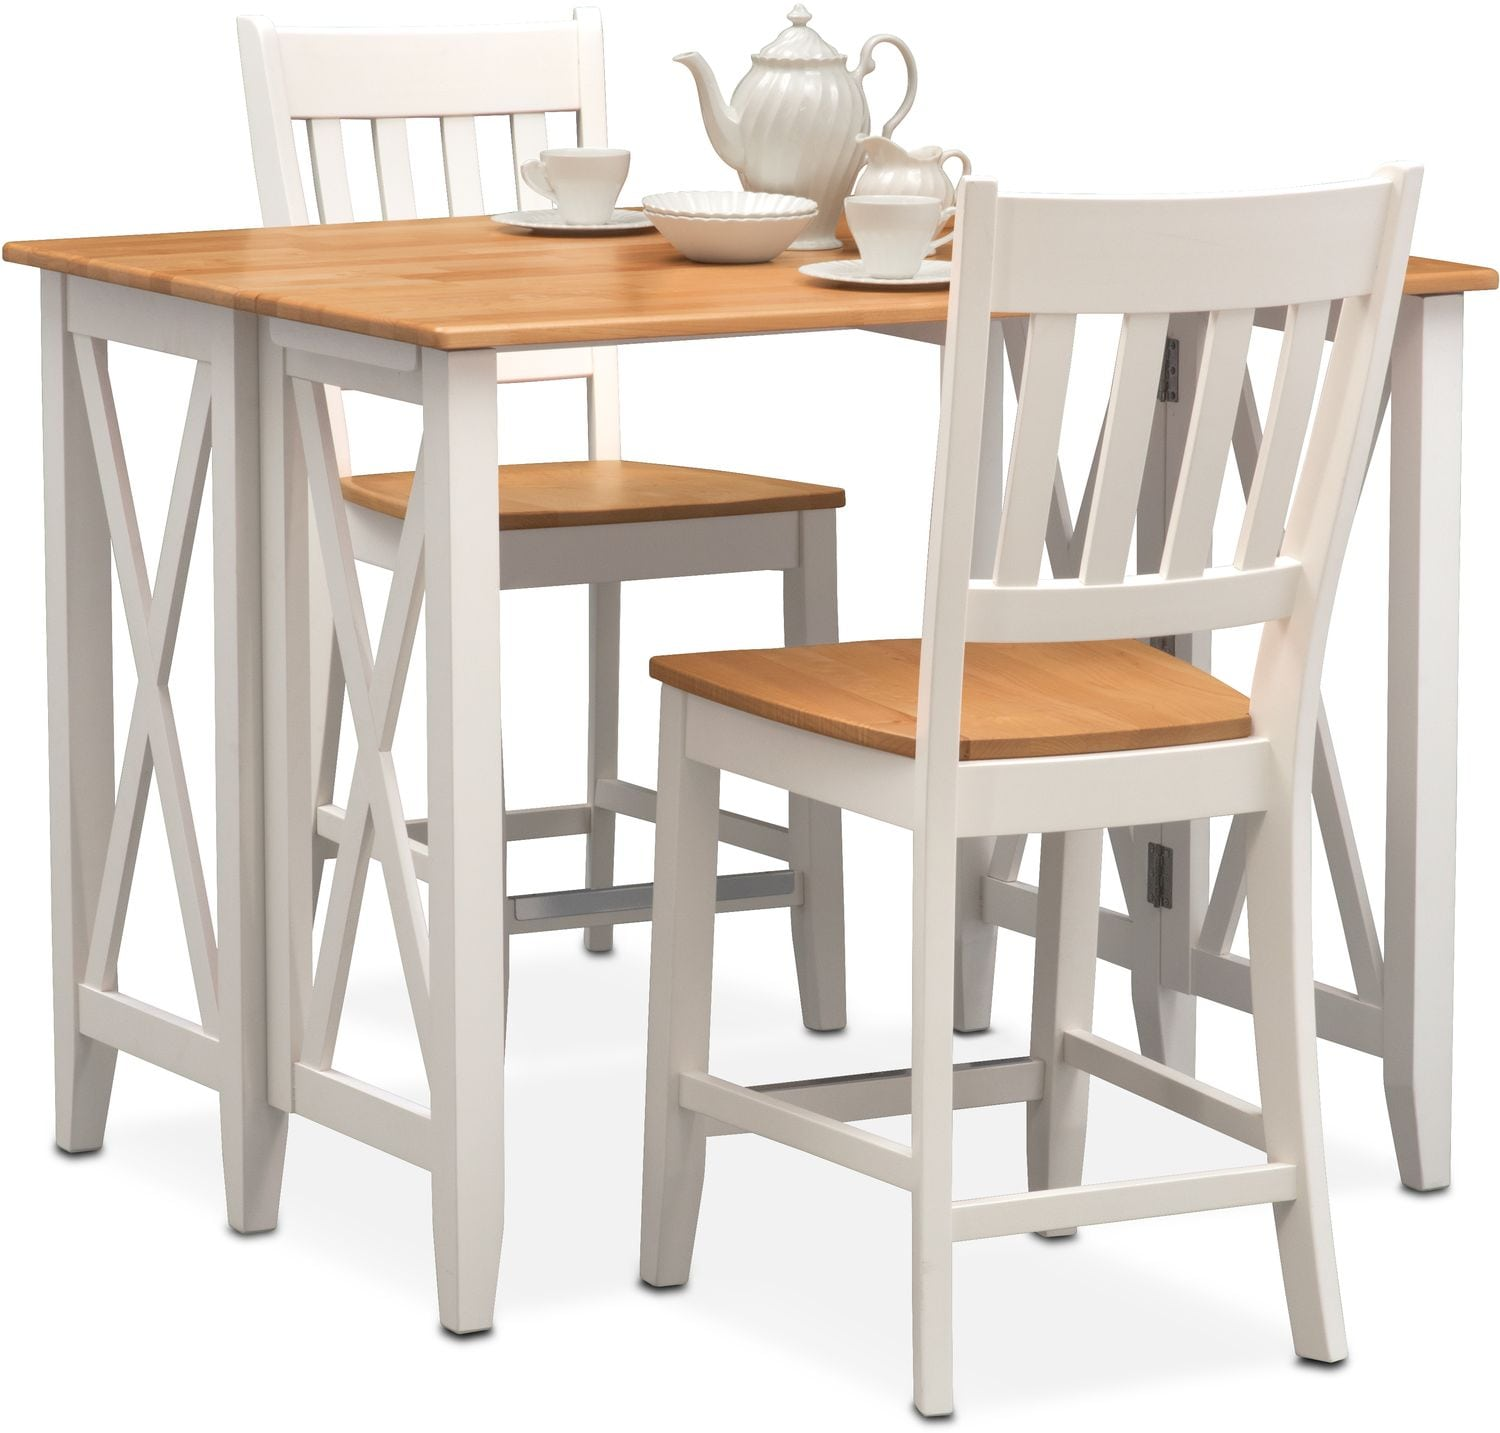 Dining Room Furniture - Nantucket Breakfast Bar and 2 Counter-Height Slat-Back Chairs - Maple and White